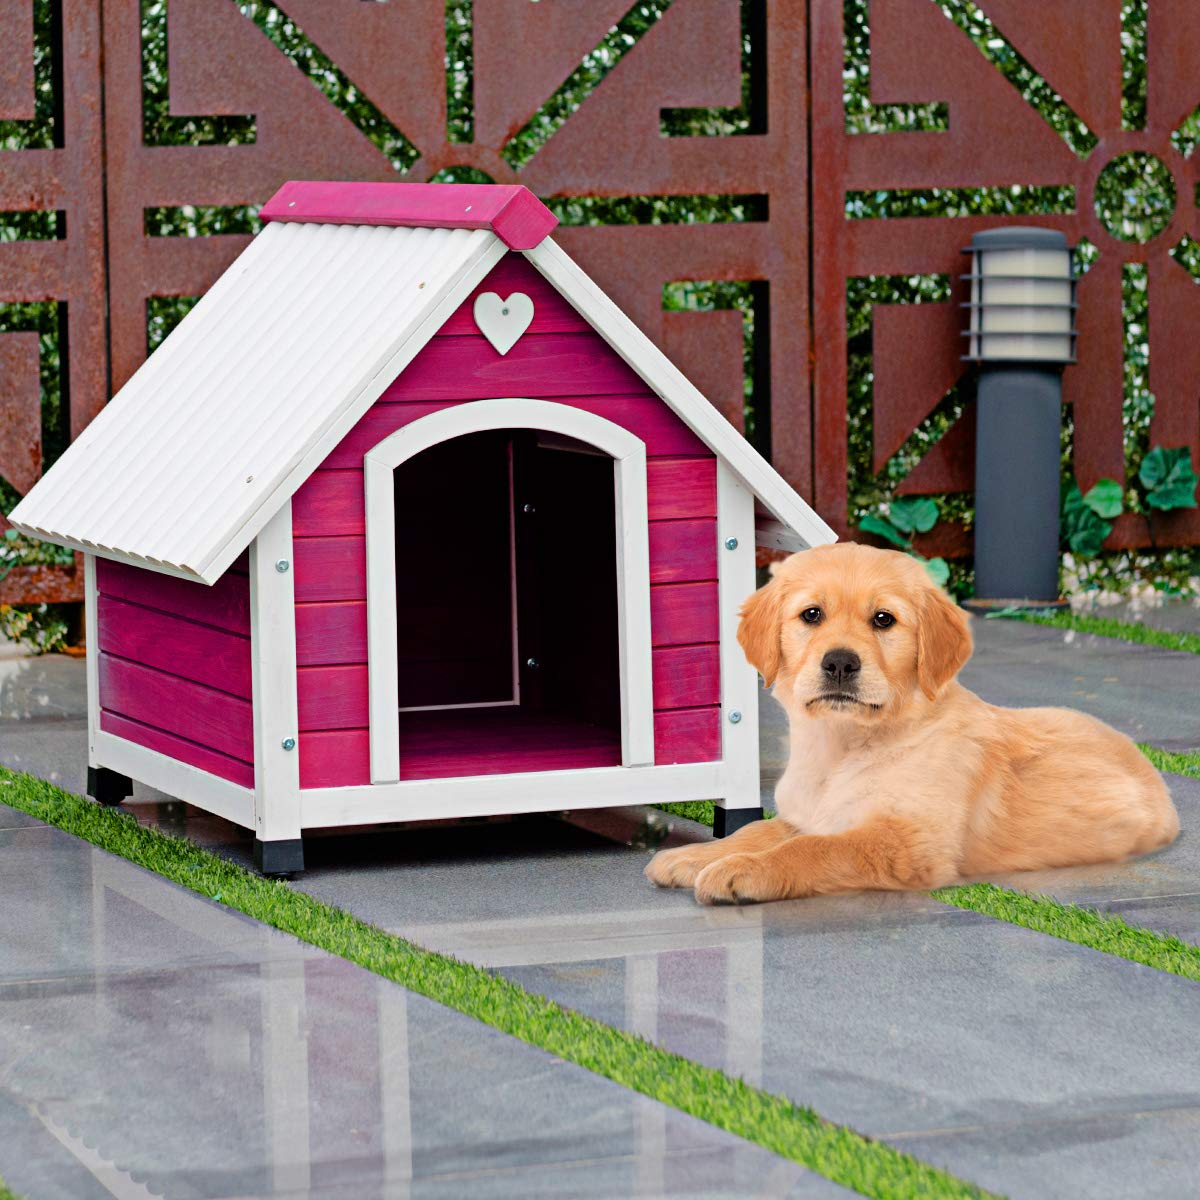 TANGKULA Wooden Dog House Outdoor Indoor Lovely Pet Shelter